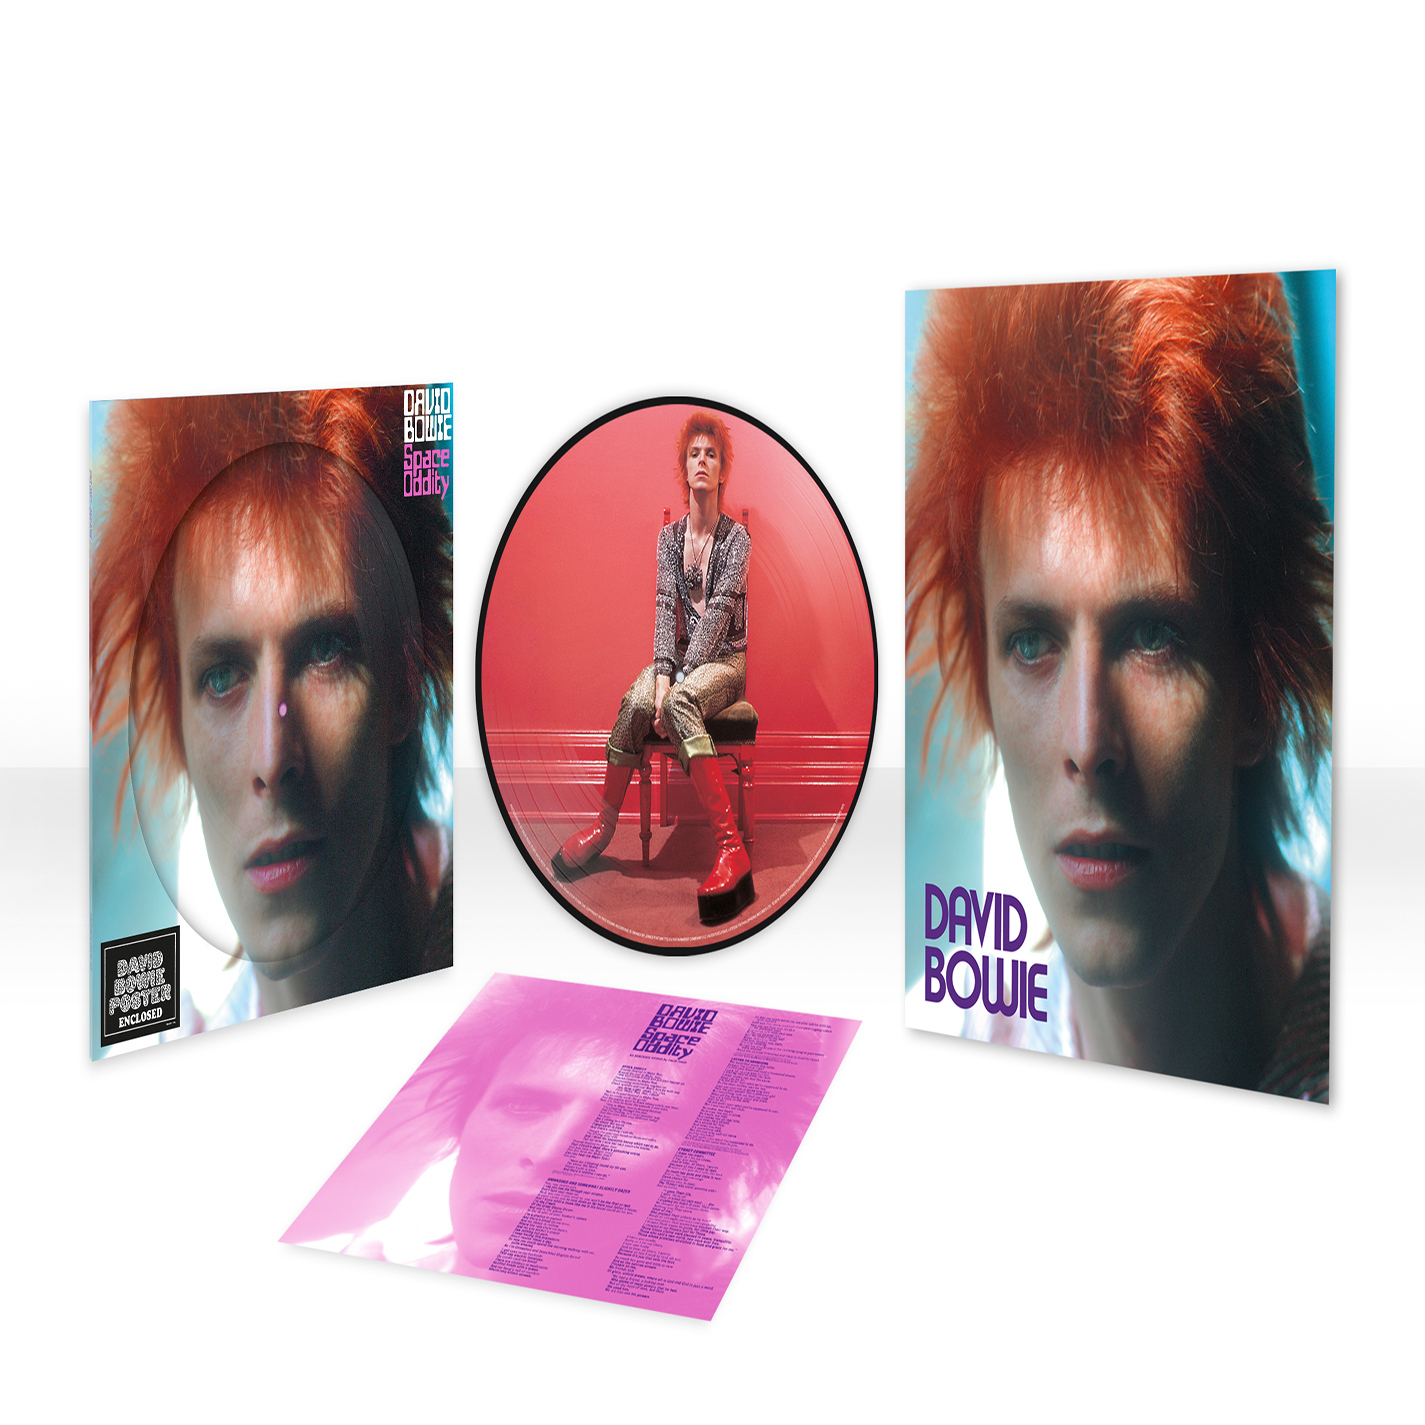 Space Oddity Limited Picture Disc LP